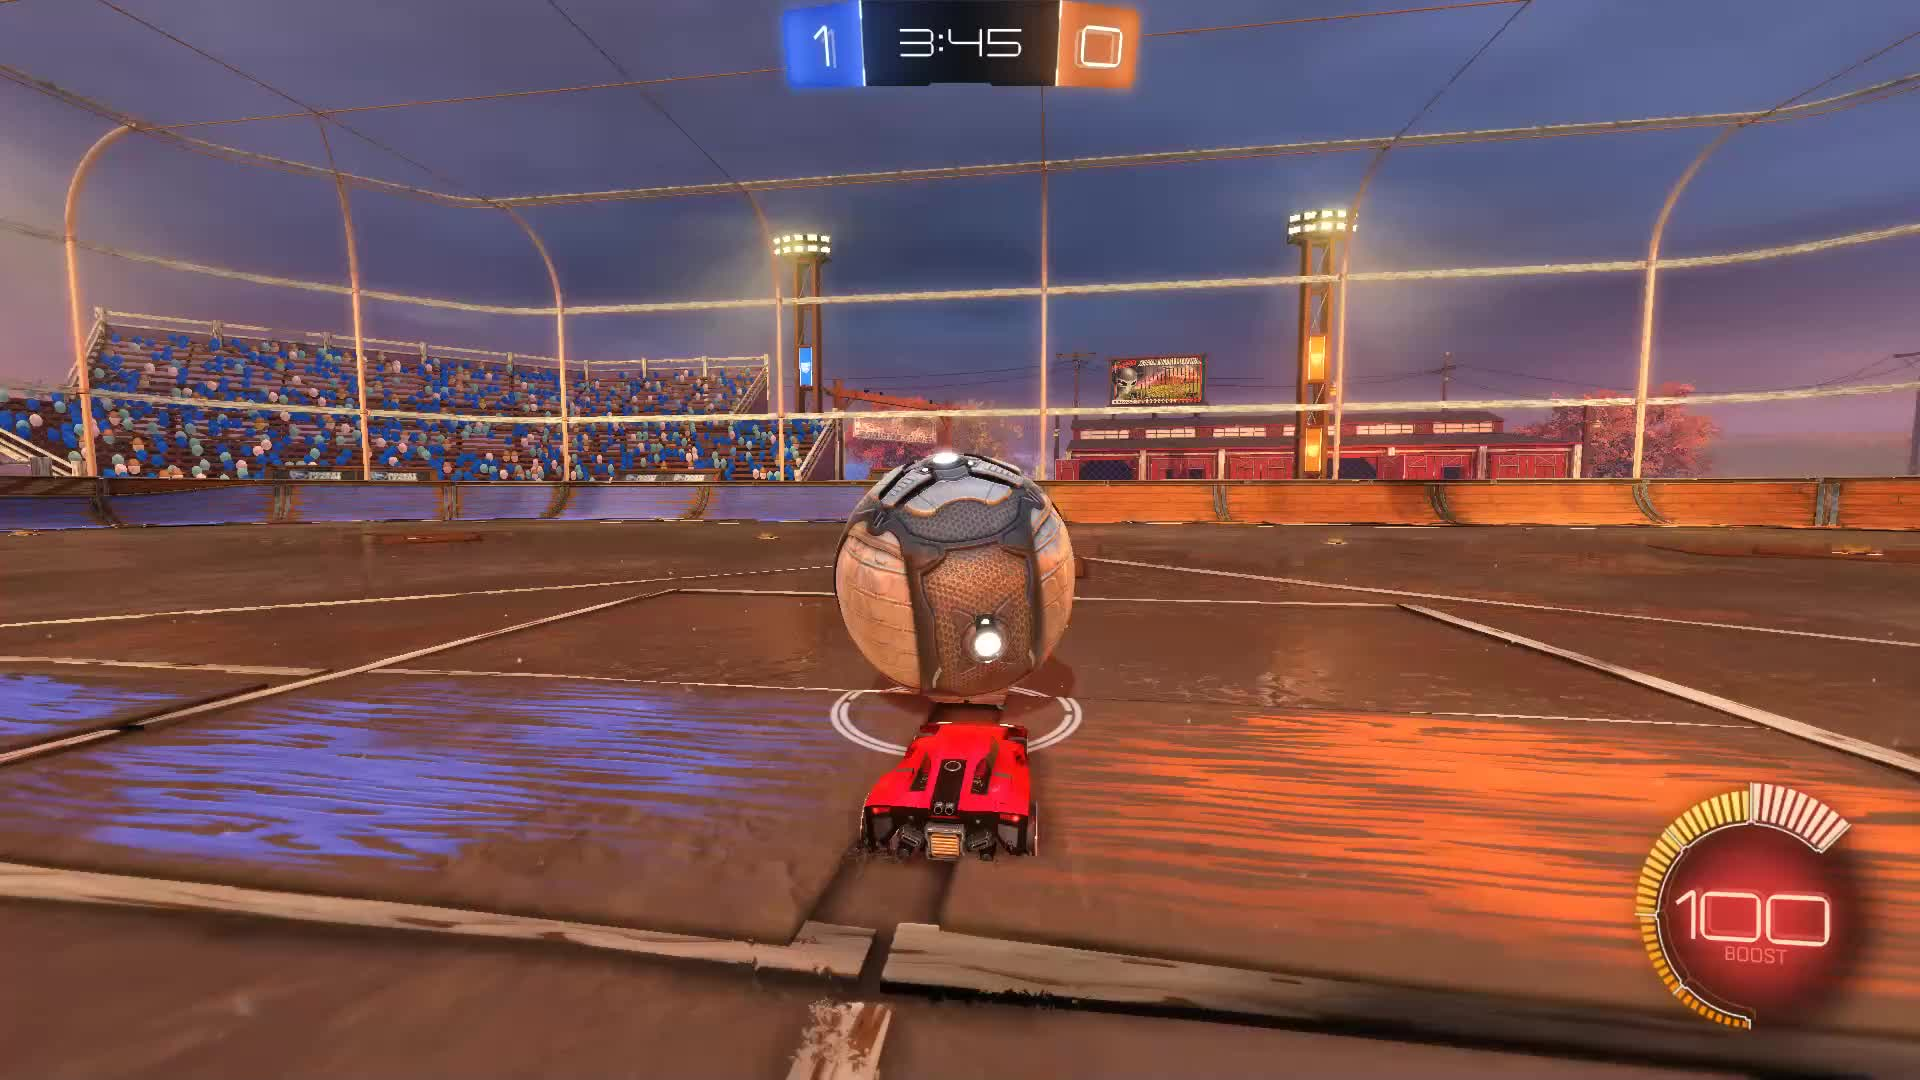 Gif Your Game, GifYourGame, Goal, Haxacolipse, Rocket League, RocketLeague, Goal 2: Haxacolipse GIFs